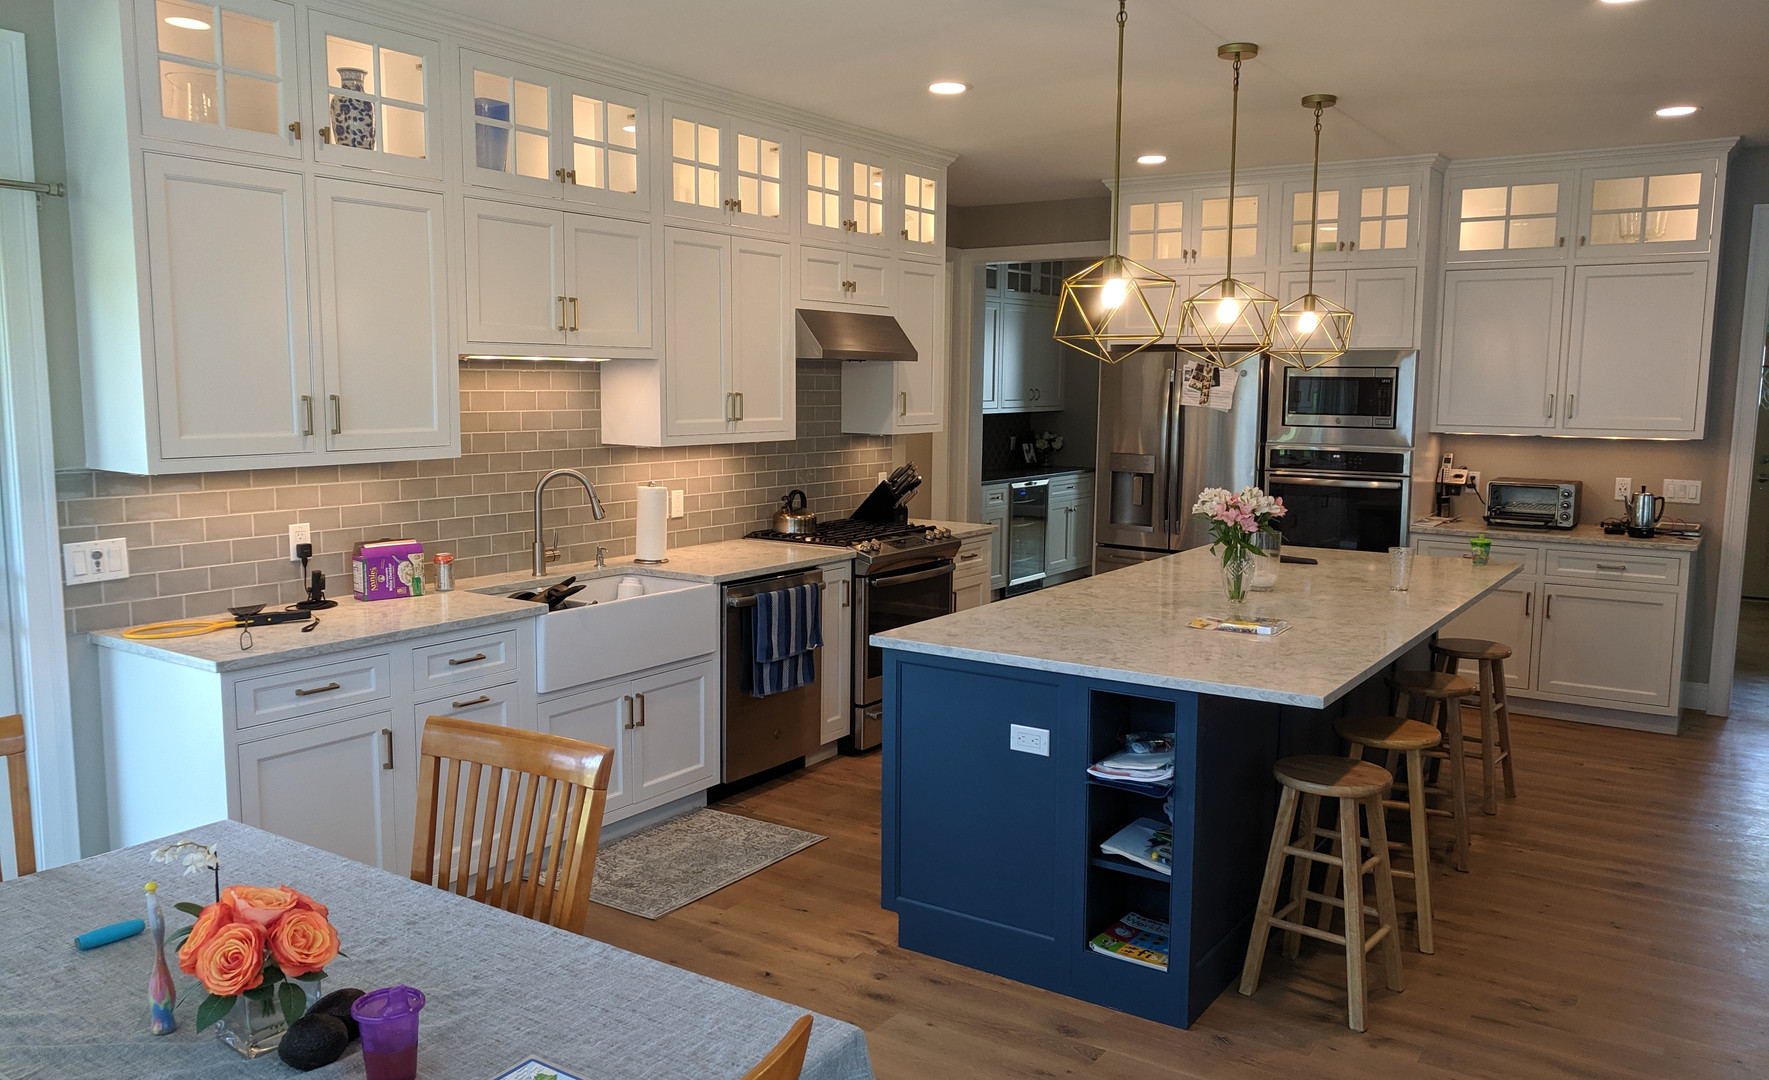 9' Ceilings with upper cabinet lighting